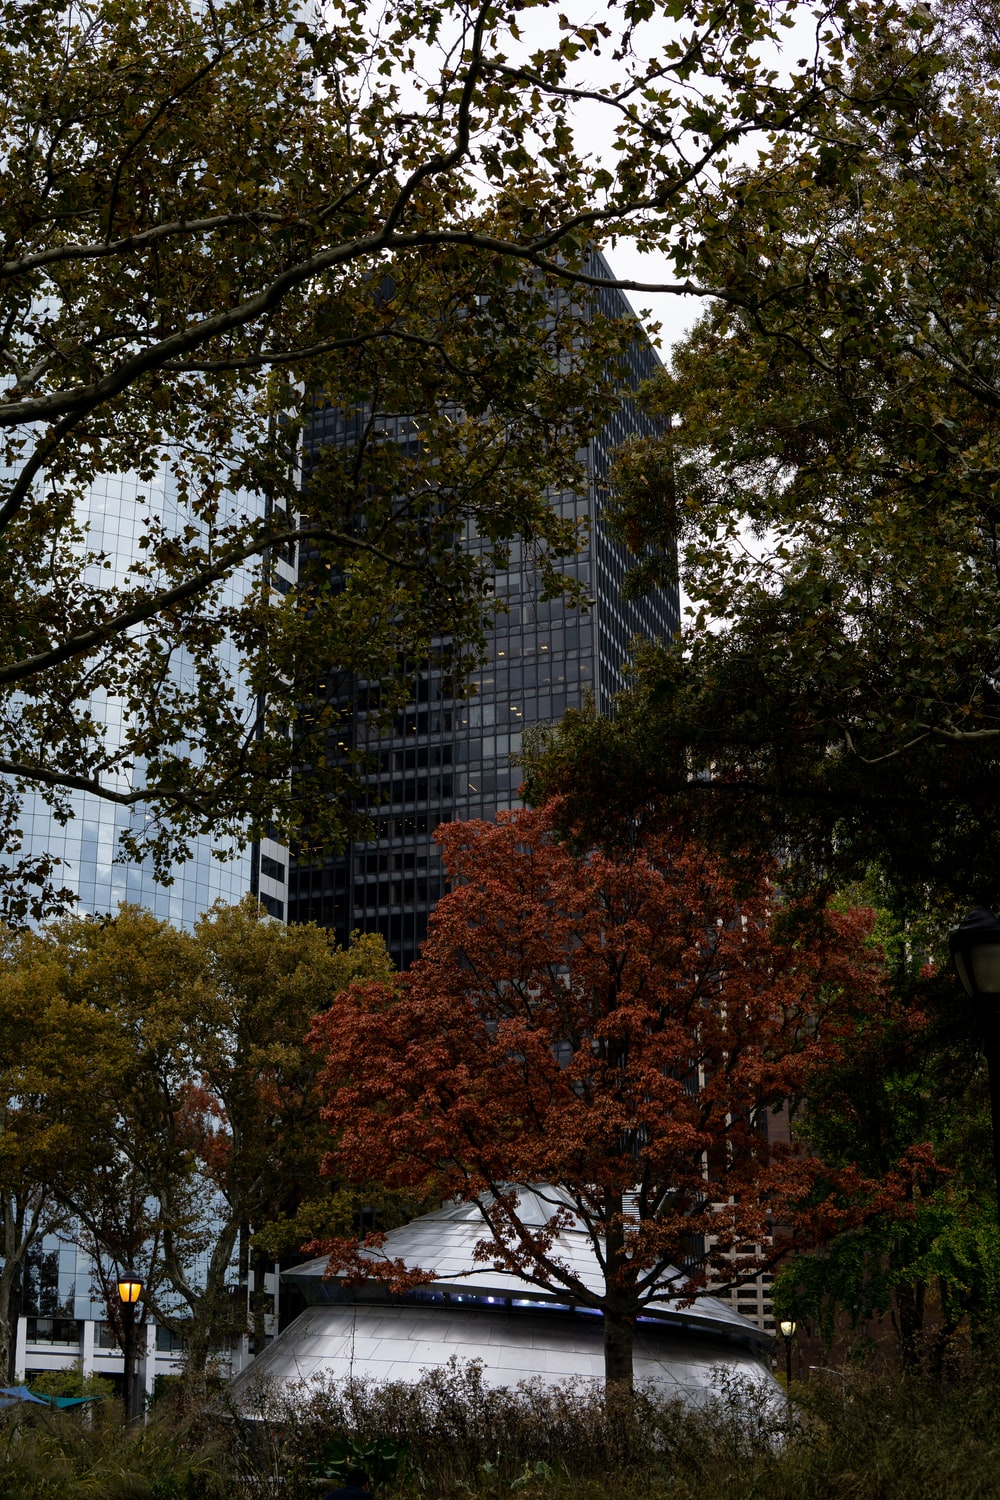 high rise building surrounded by trees